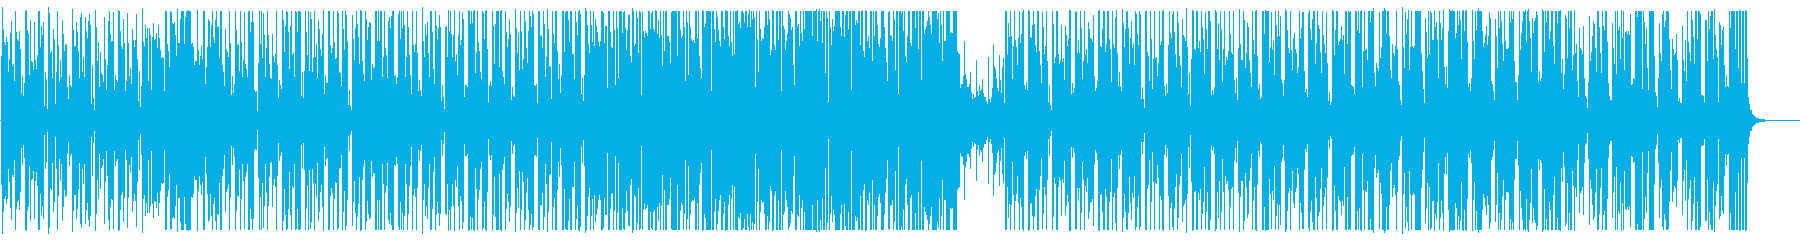 A slow xylophone synthesizer song's reproduced waveform